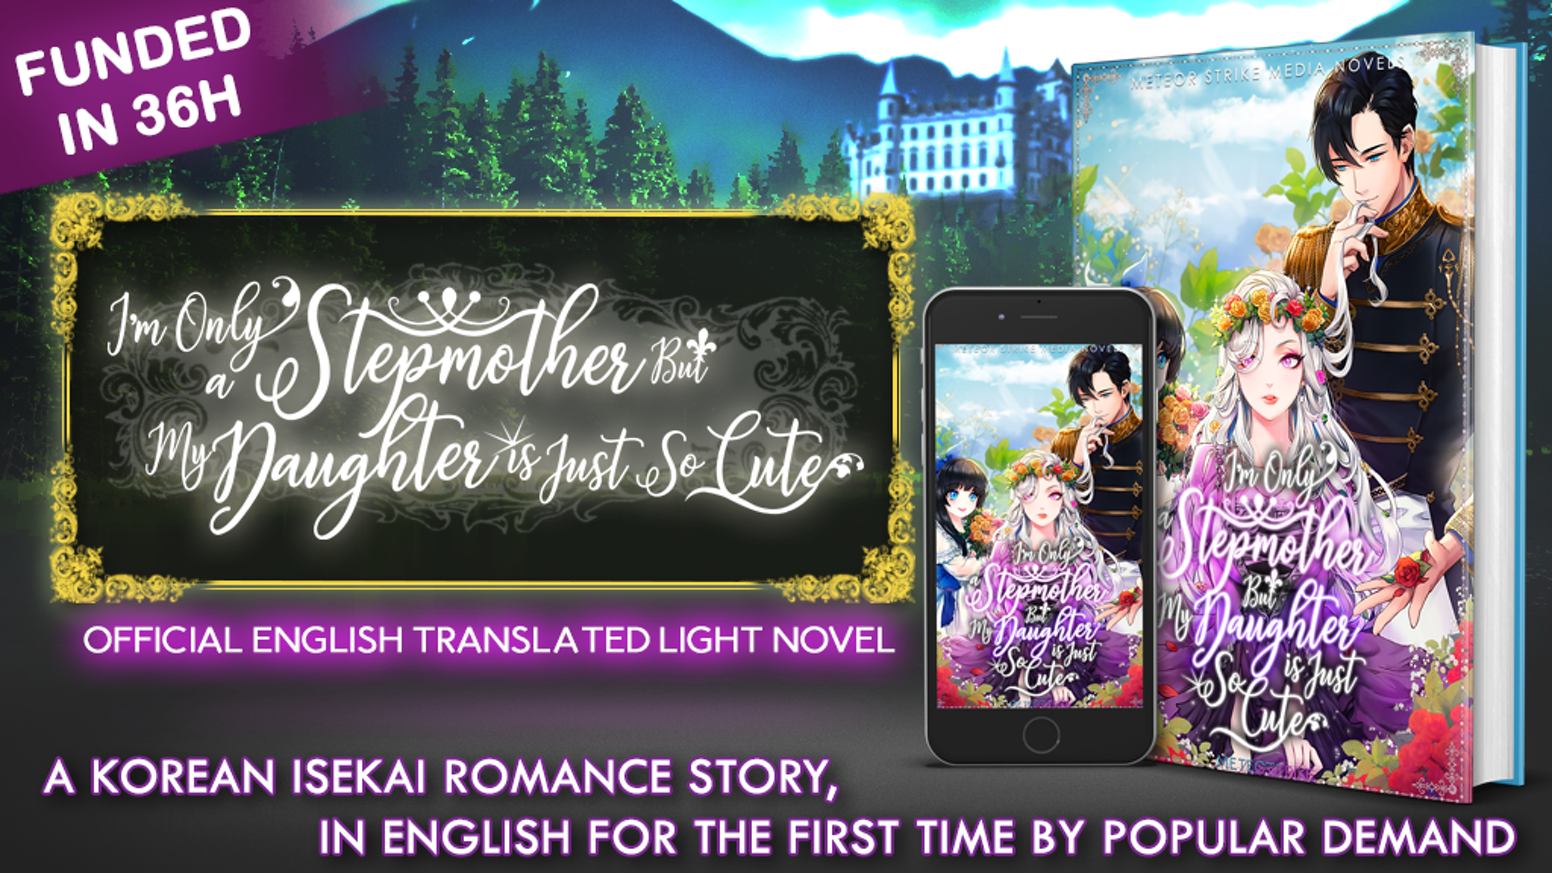 A Korean Web Novel localized into English. Immerse yourself in one of Korea's most popular romance novels!